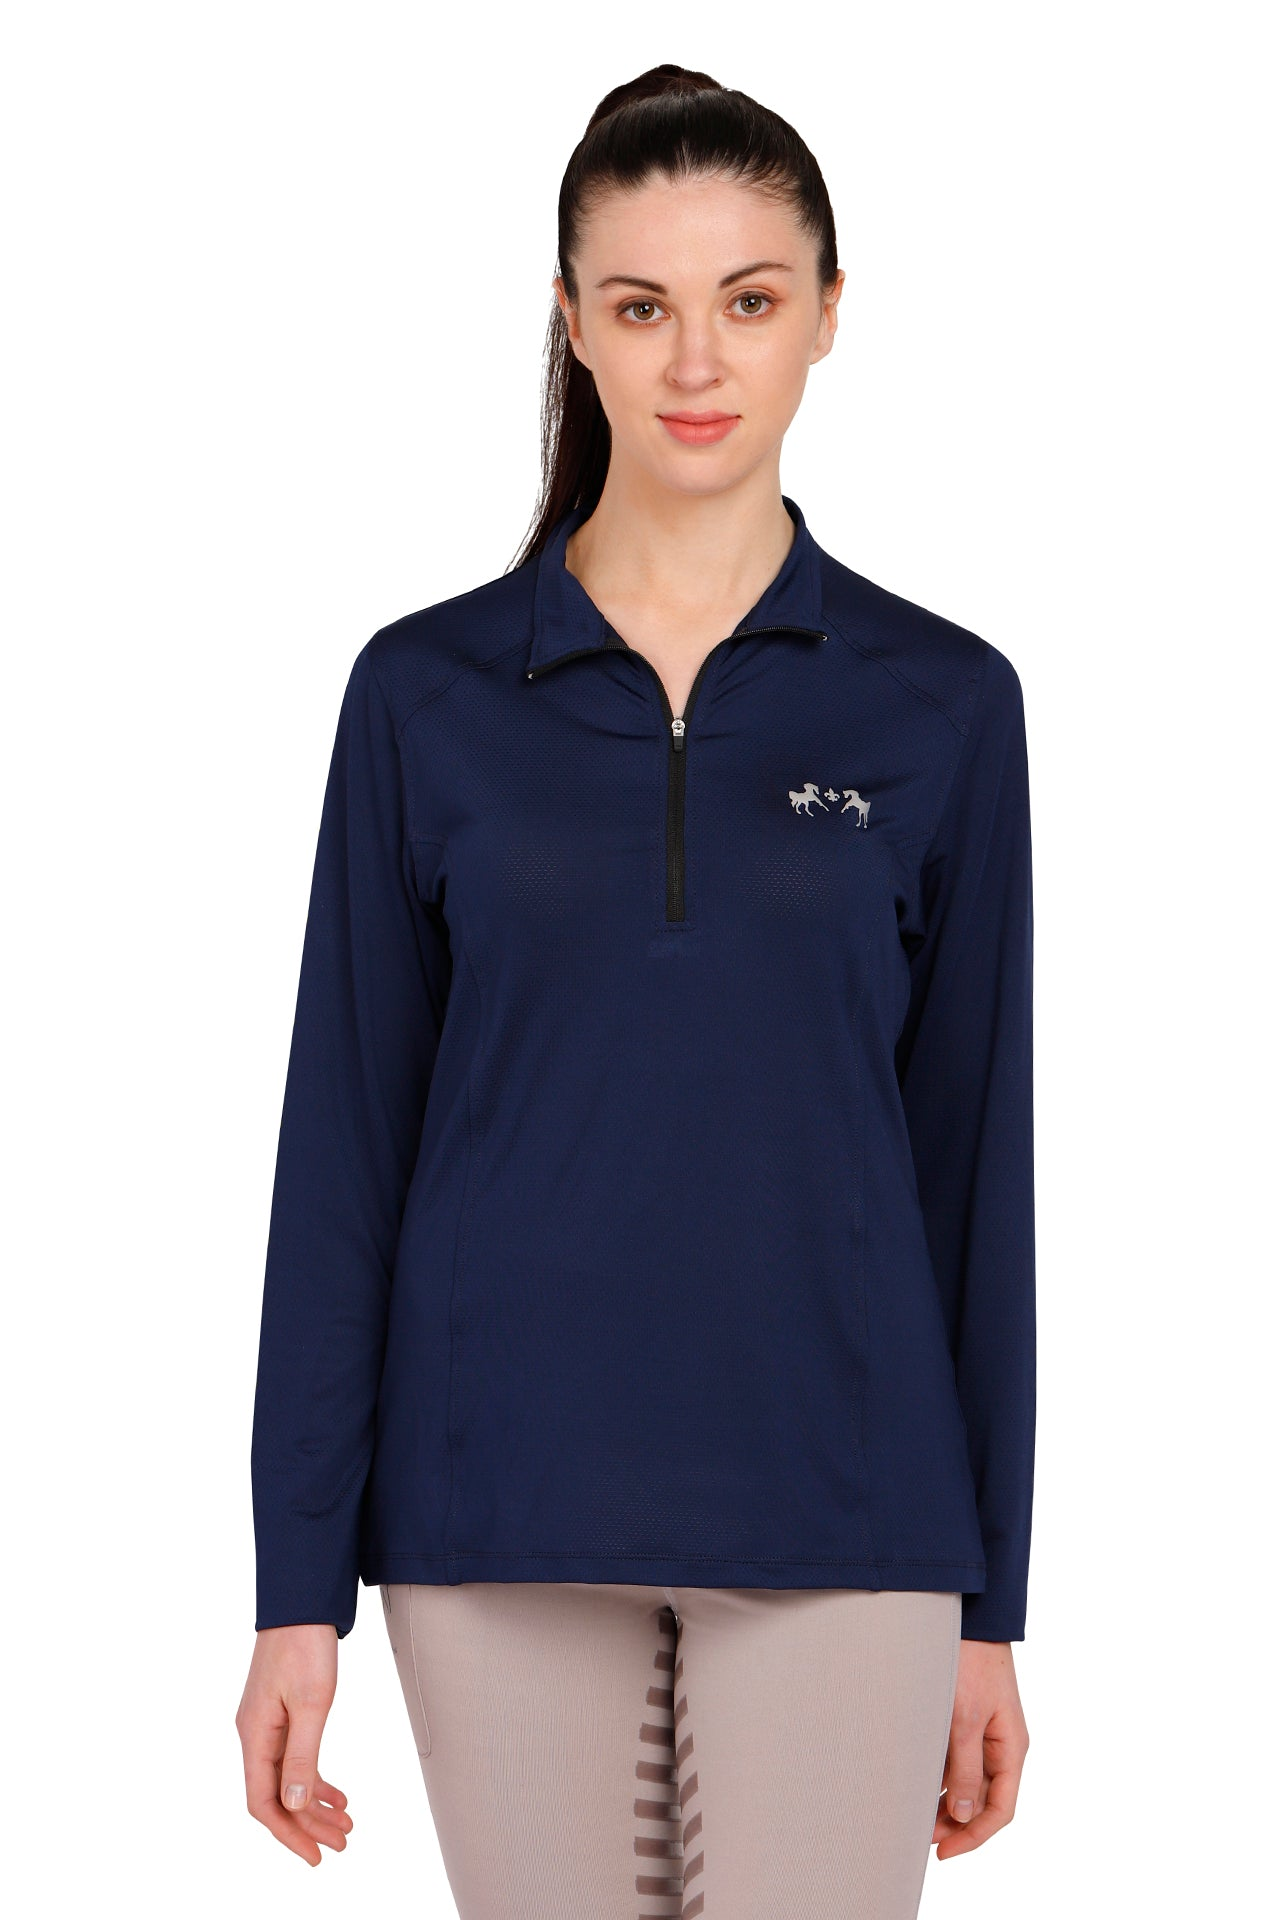 Equine Couture Cavaletti Sport Shirt - Equine Couture - Breeches.com